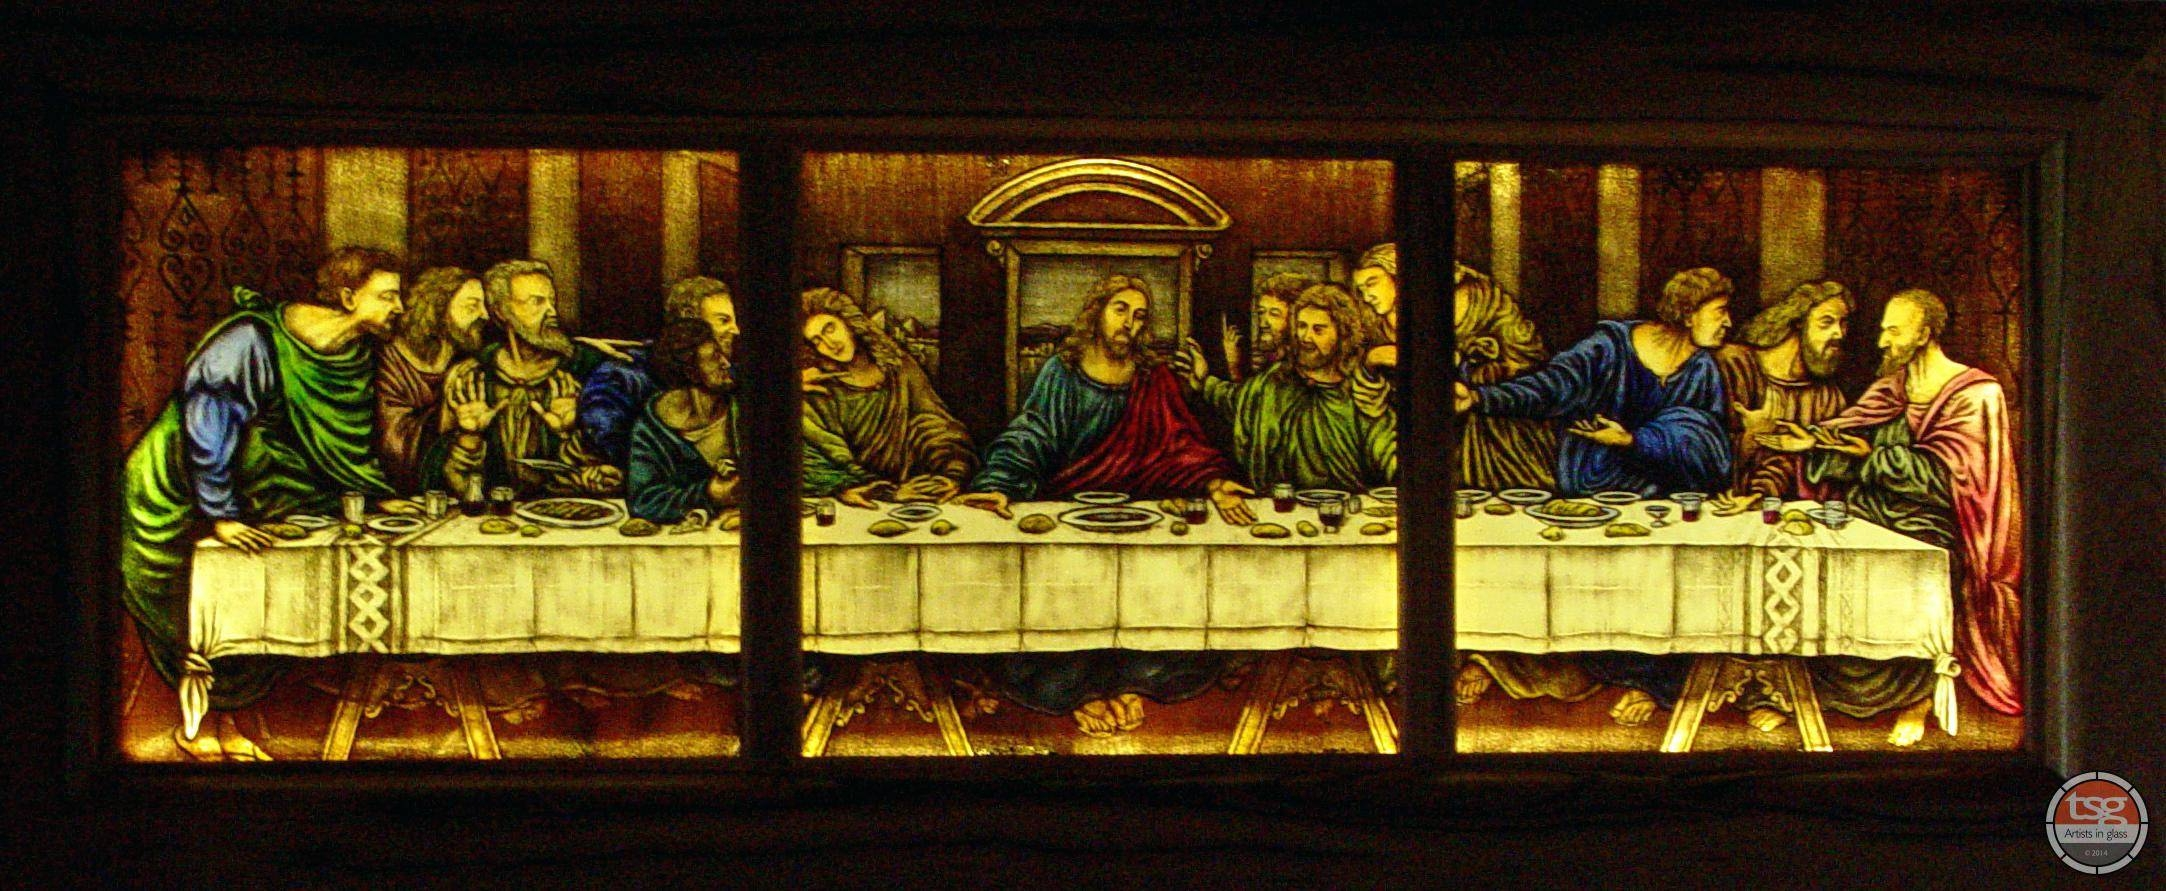 Wall Decor: Ergonomic Last Supper Wall Decor Images (View 2 of 20)